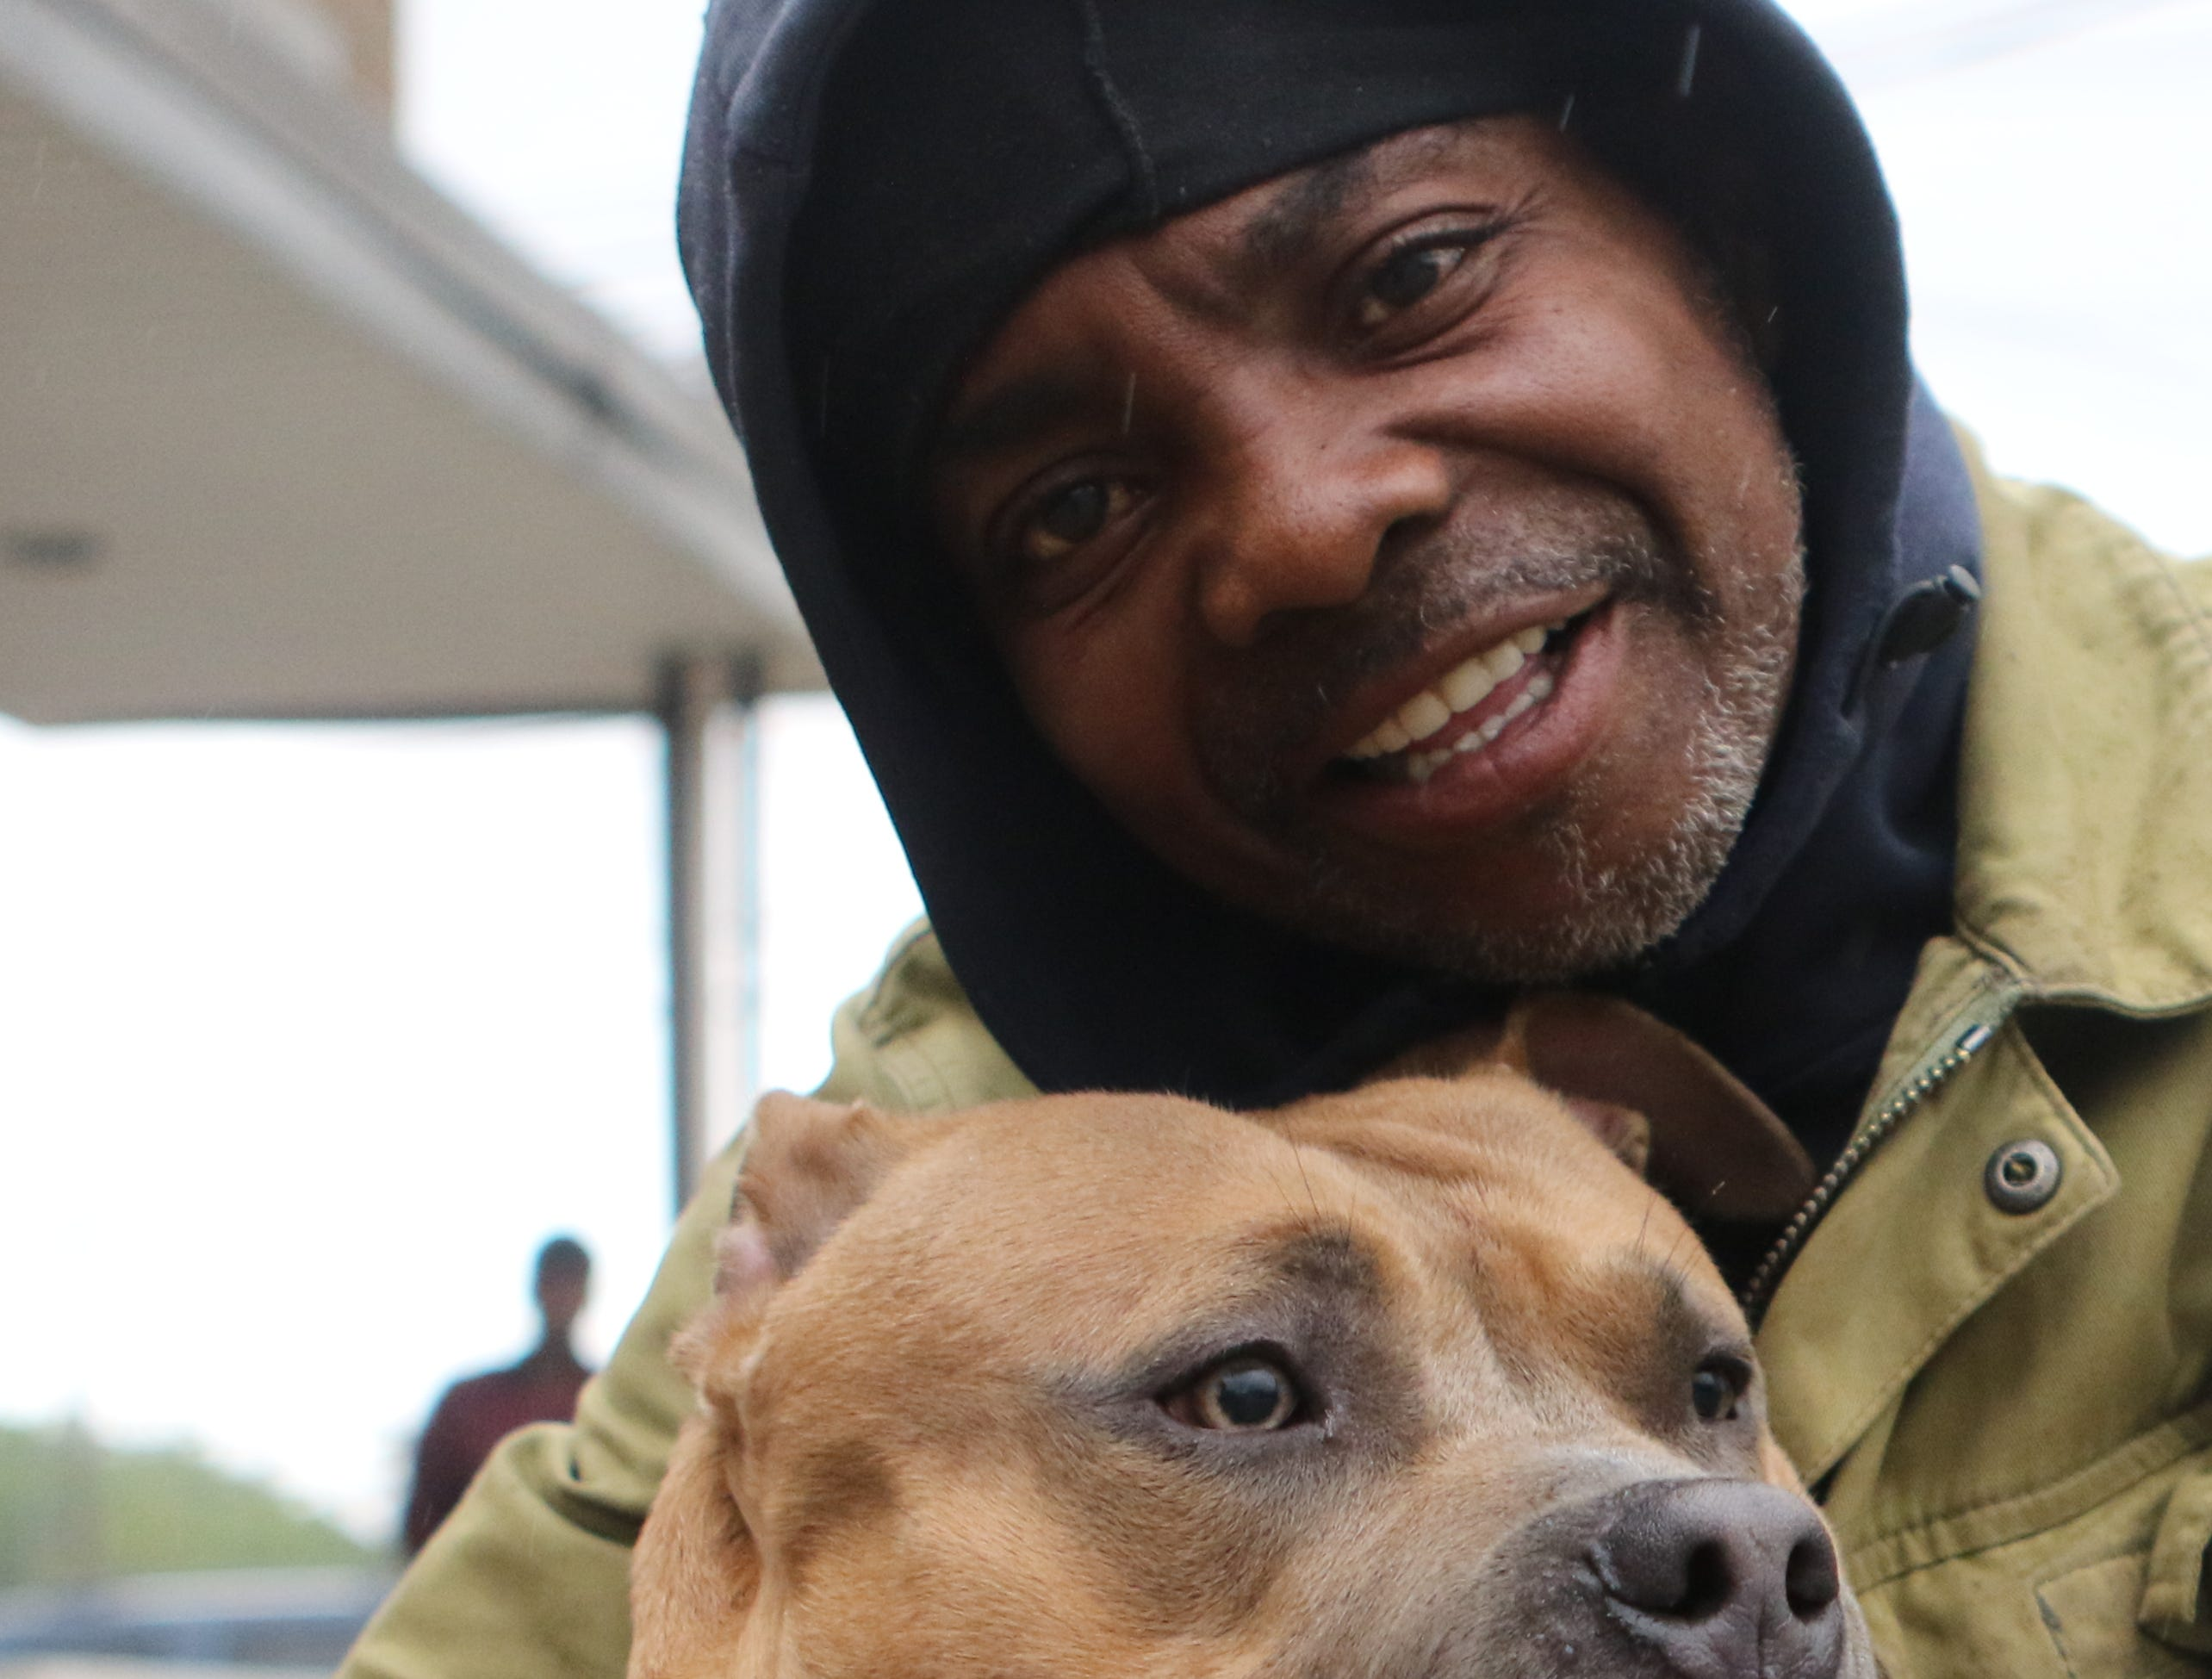 Jerome Gayden poses with Junior before getting his dog vaccinated in Paterson. People came out to the Riverside Firehouse in Paterson, Tuesday, May 14, 2019, to get free rabies vaccinations for their cats and dogs.  The 44th annual clinic continues Thursday at 128 Getty Ave. and Friday at 300 McBride Ave. from 7-8pm.  It concludes over the weekend, Saturday from 12:30-1:30pm at Firehouse No.4 on Temple St.  Sunday it is back at Riverhouse Firehouse at East 16th St. and Lafayette from 10:30 until noon.